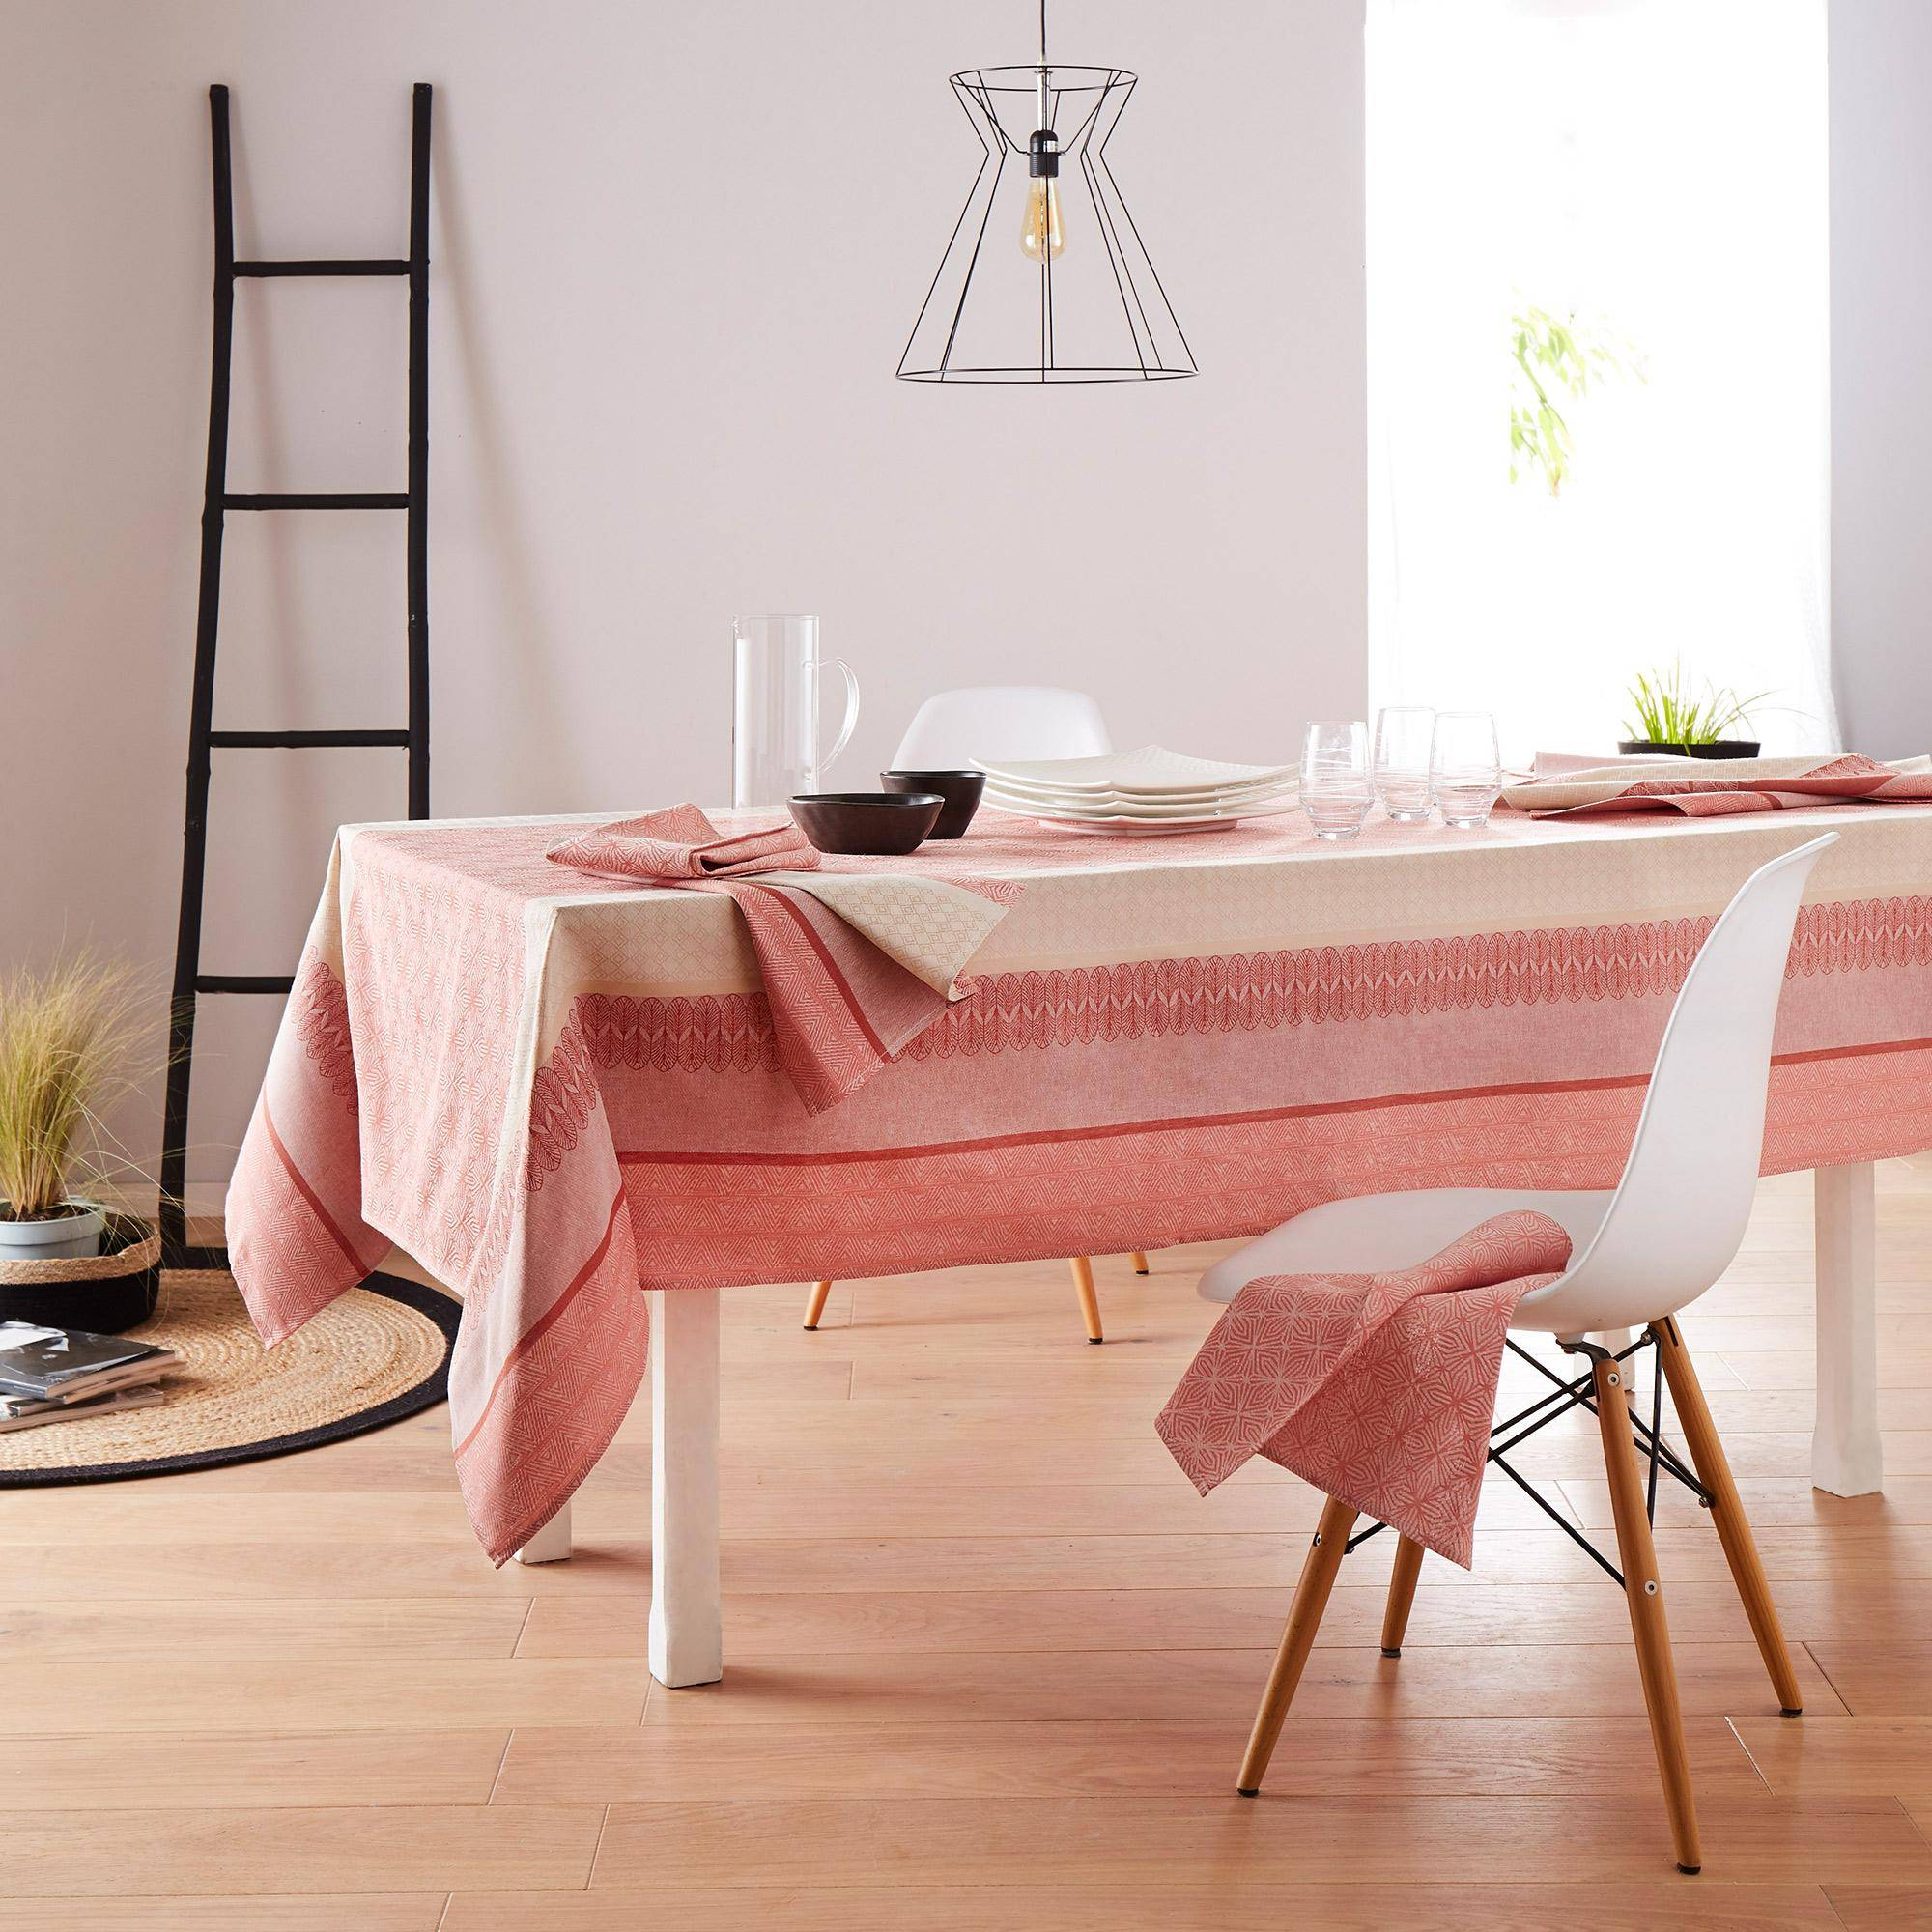 Linnea Nappe carrée 150x150 cm Jacquard 100% coton + enduction acrylique CHARLESTON rouge Corail